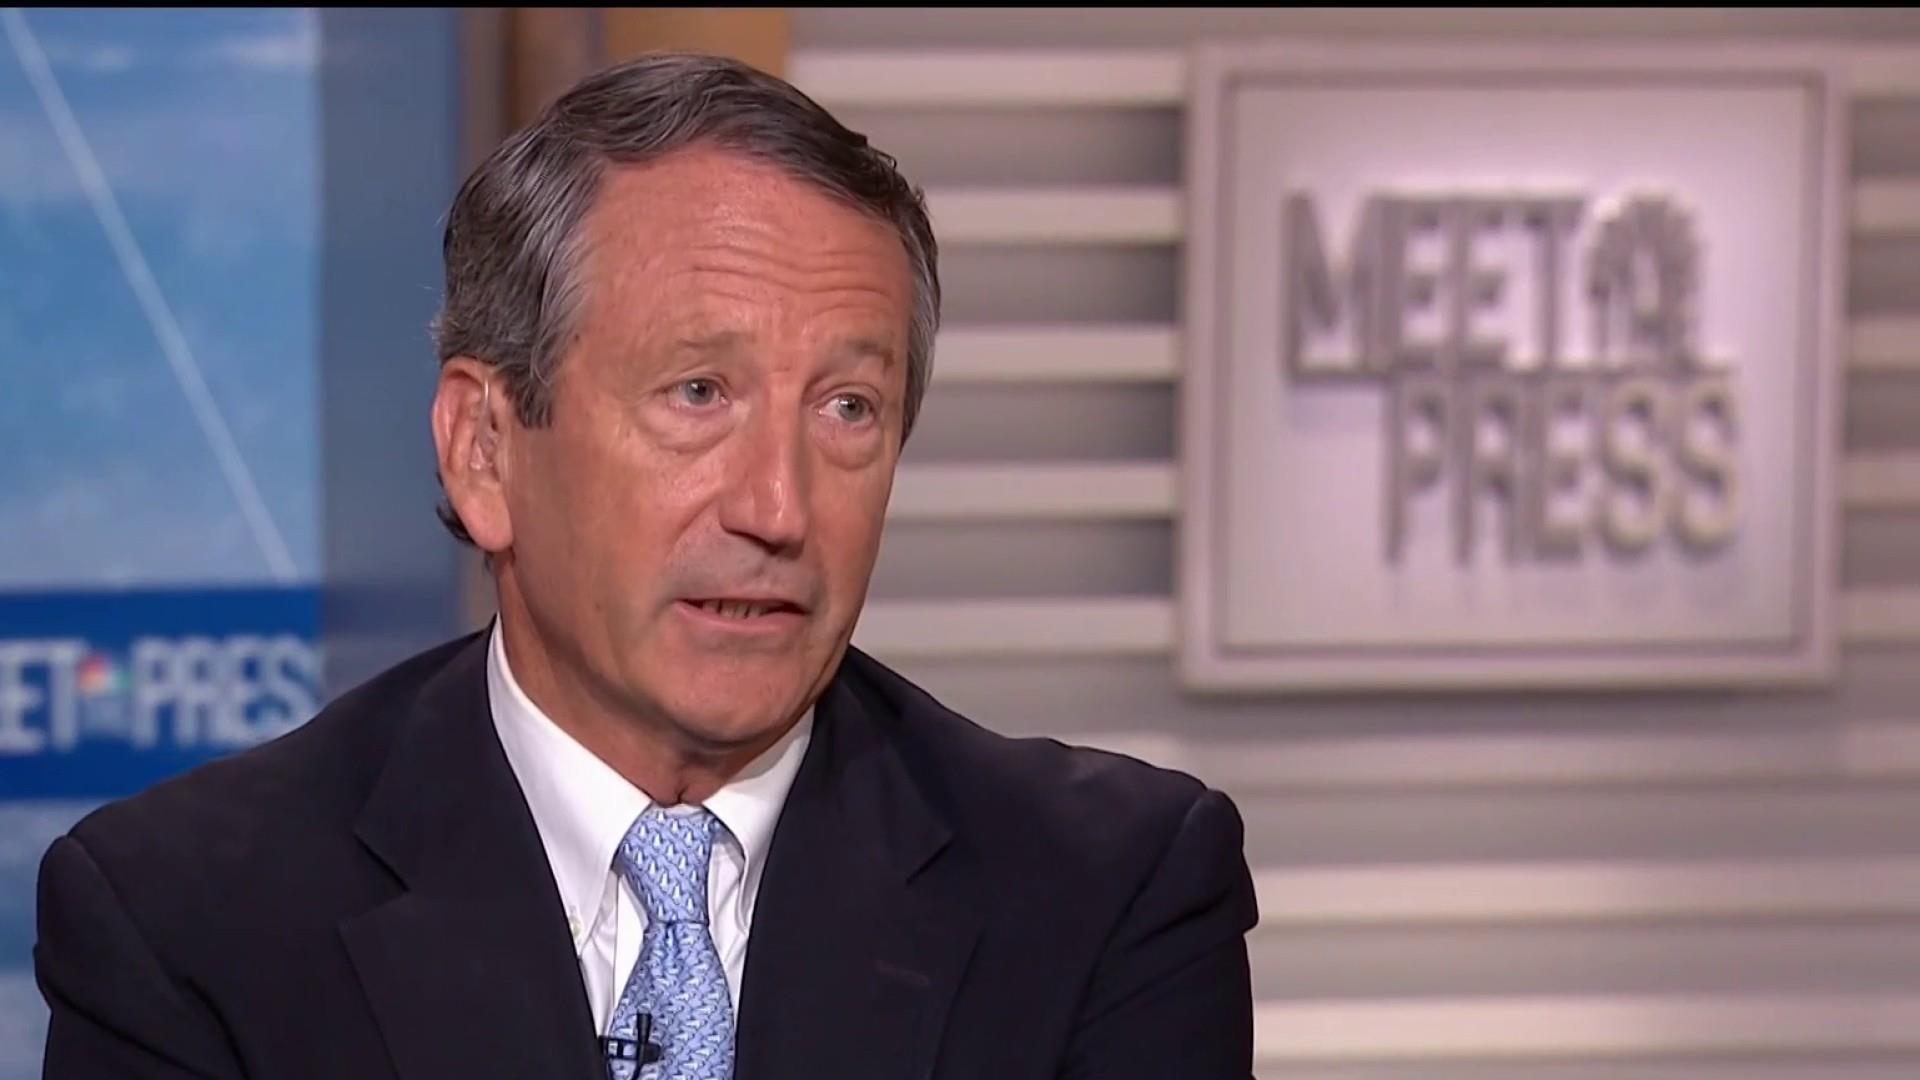 Full Sanford: Talk of presidential challenge began the day I lost my primary